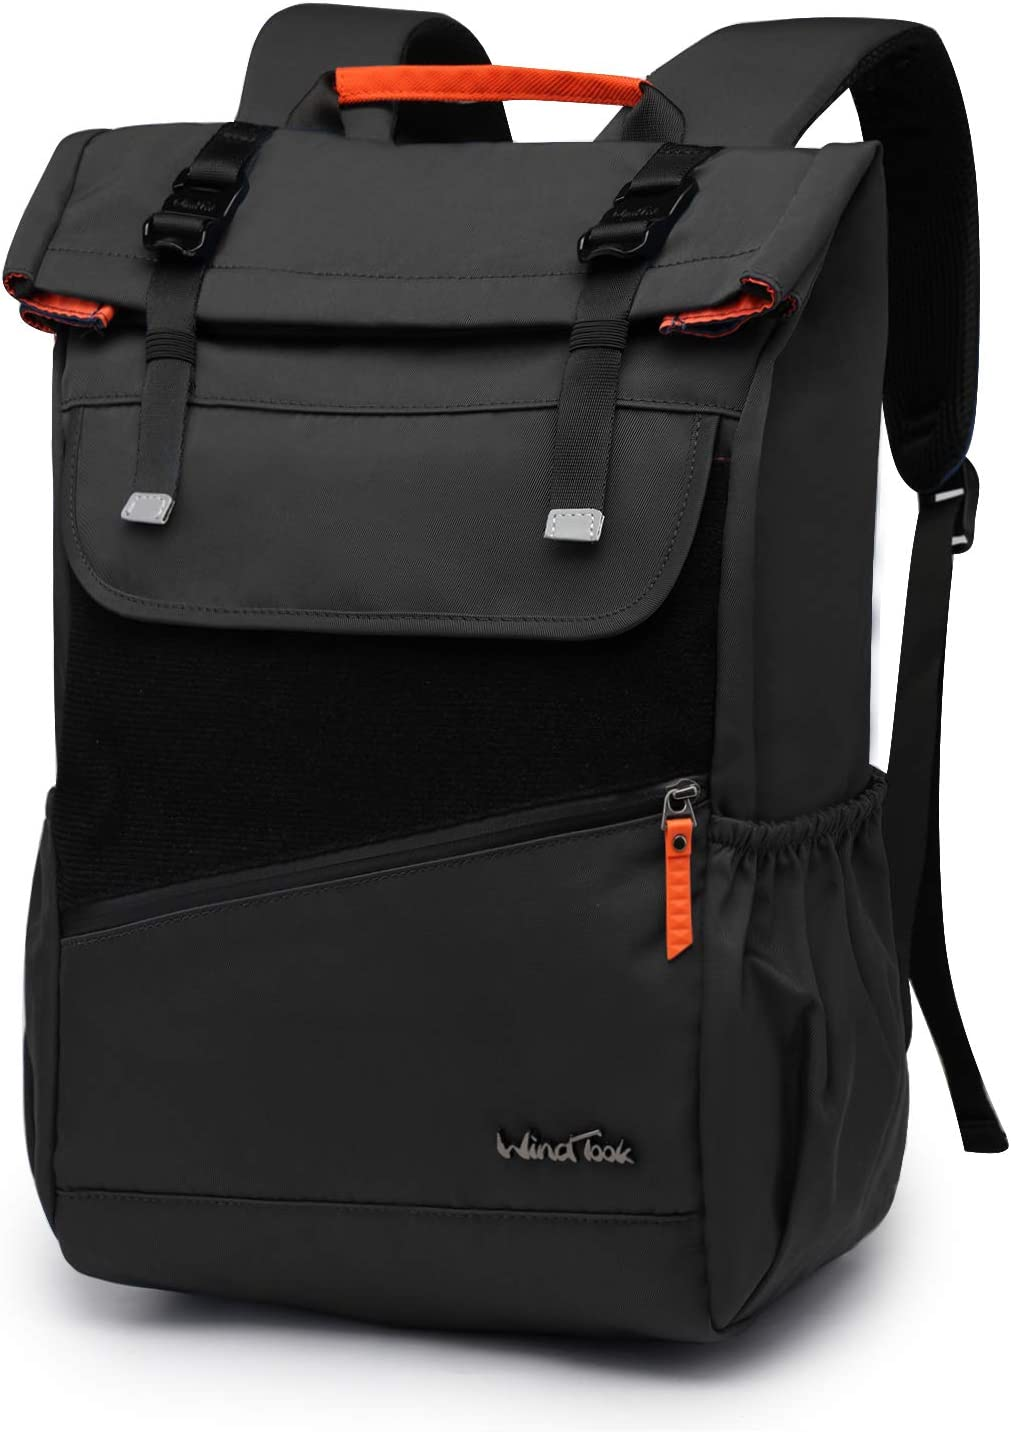 WindTook Laptop Backpack for Women and Men Travel Computer Bag School College Daypack Suits 15.6 Inch Notebook